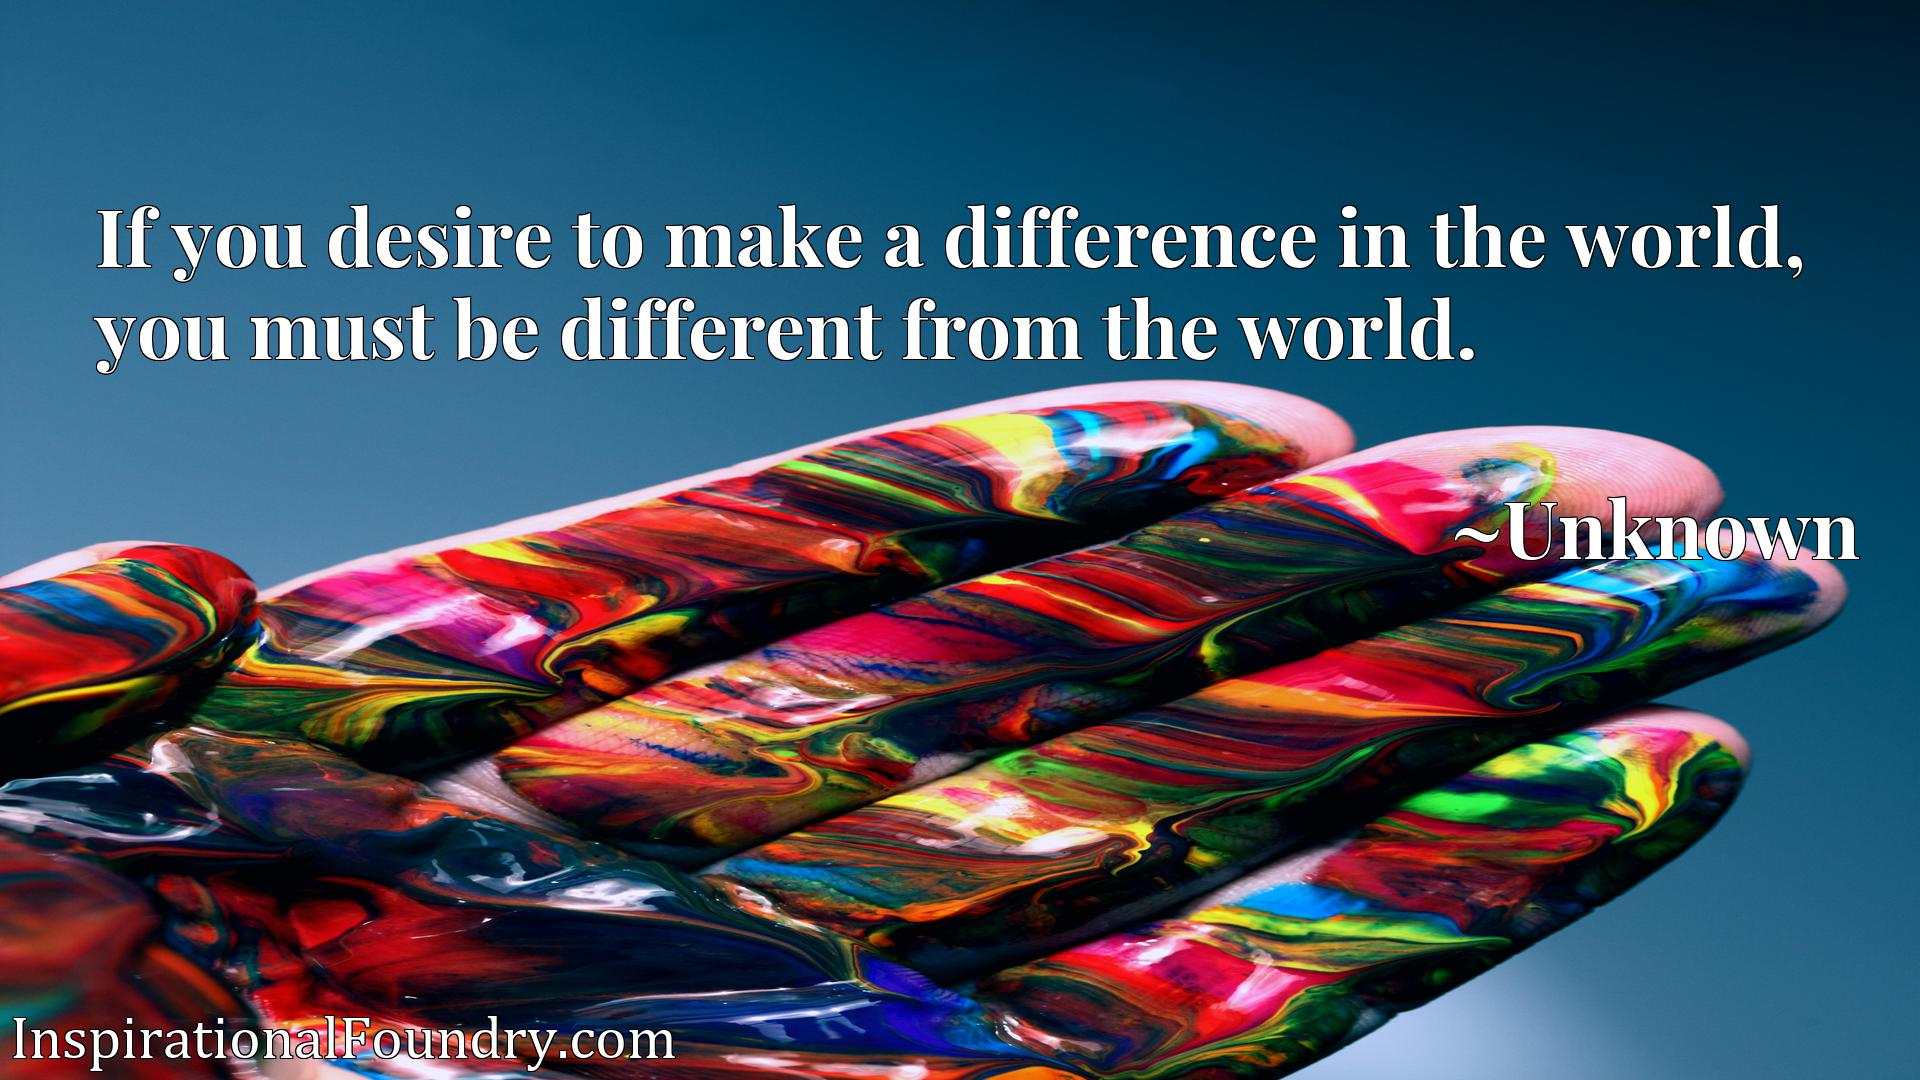 Quote Picture :If you desire to make a difference in the world, you must be different from the world.